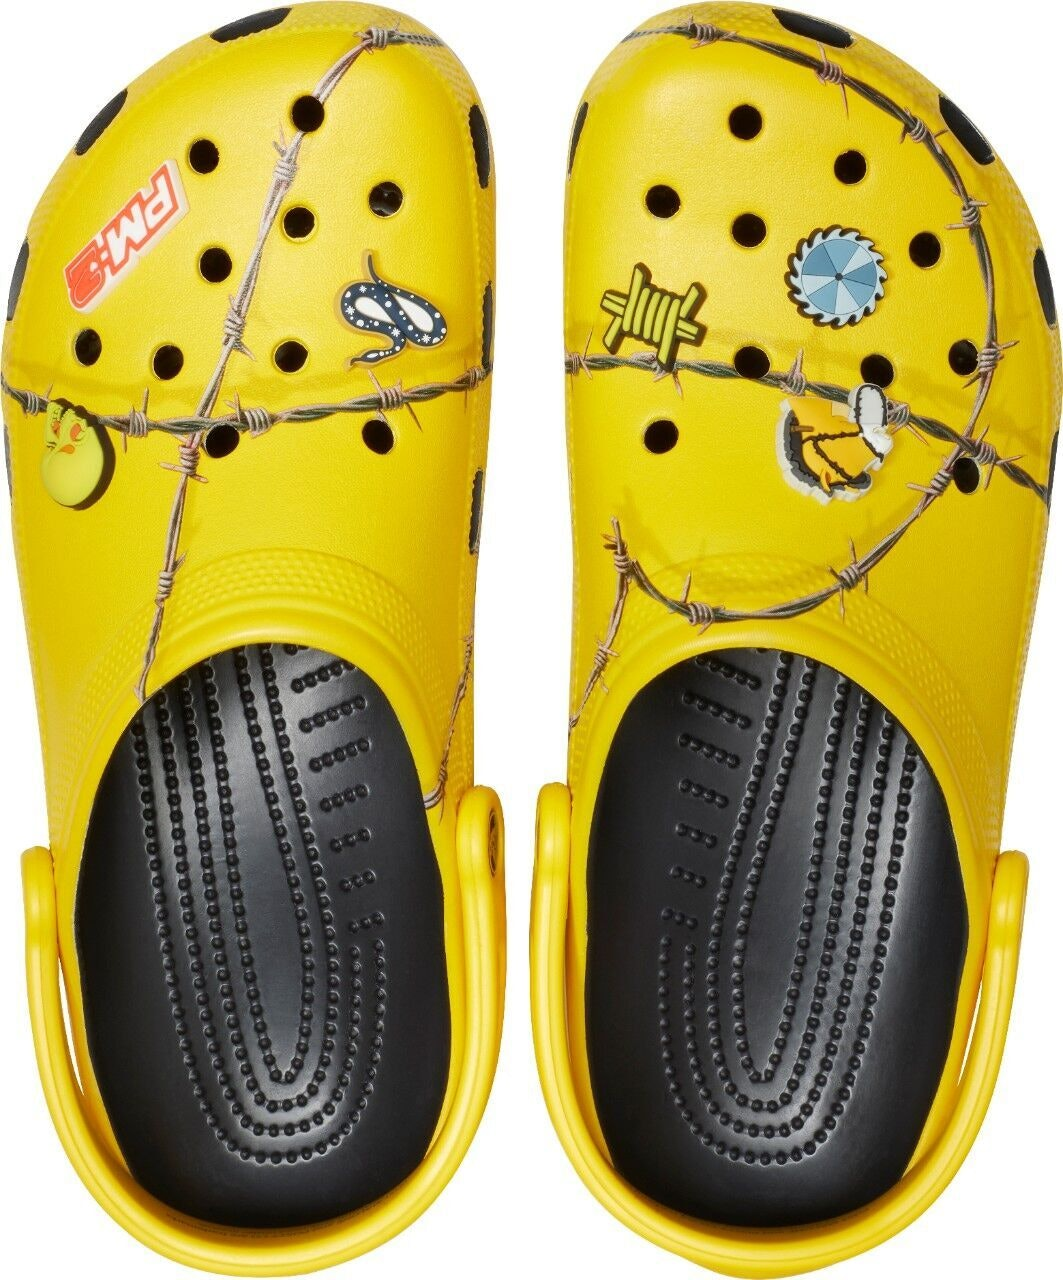 Post Malone X Crocs Barbed Wire Clogs